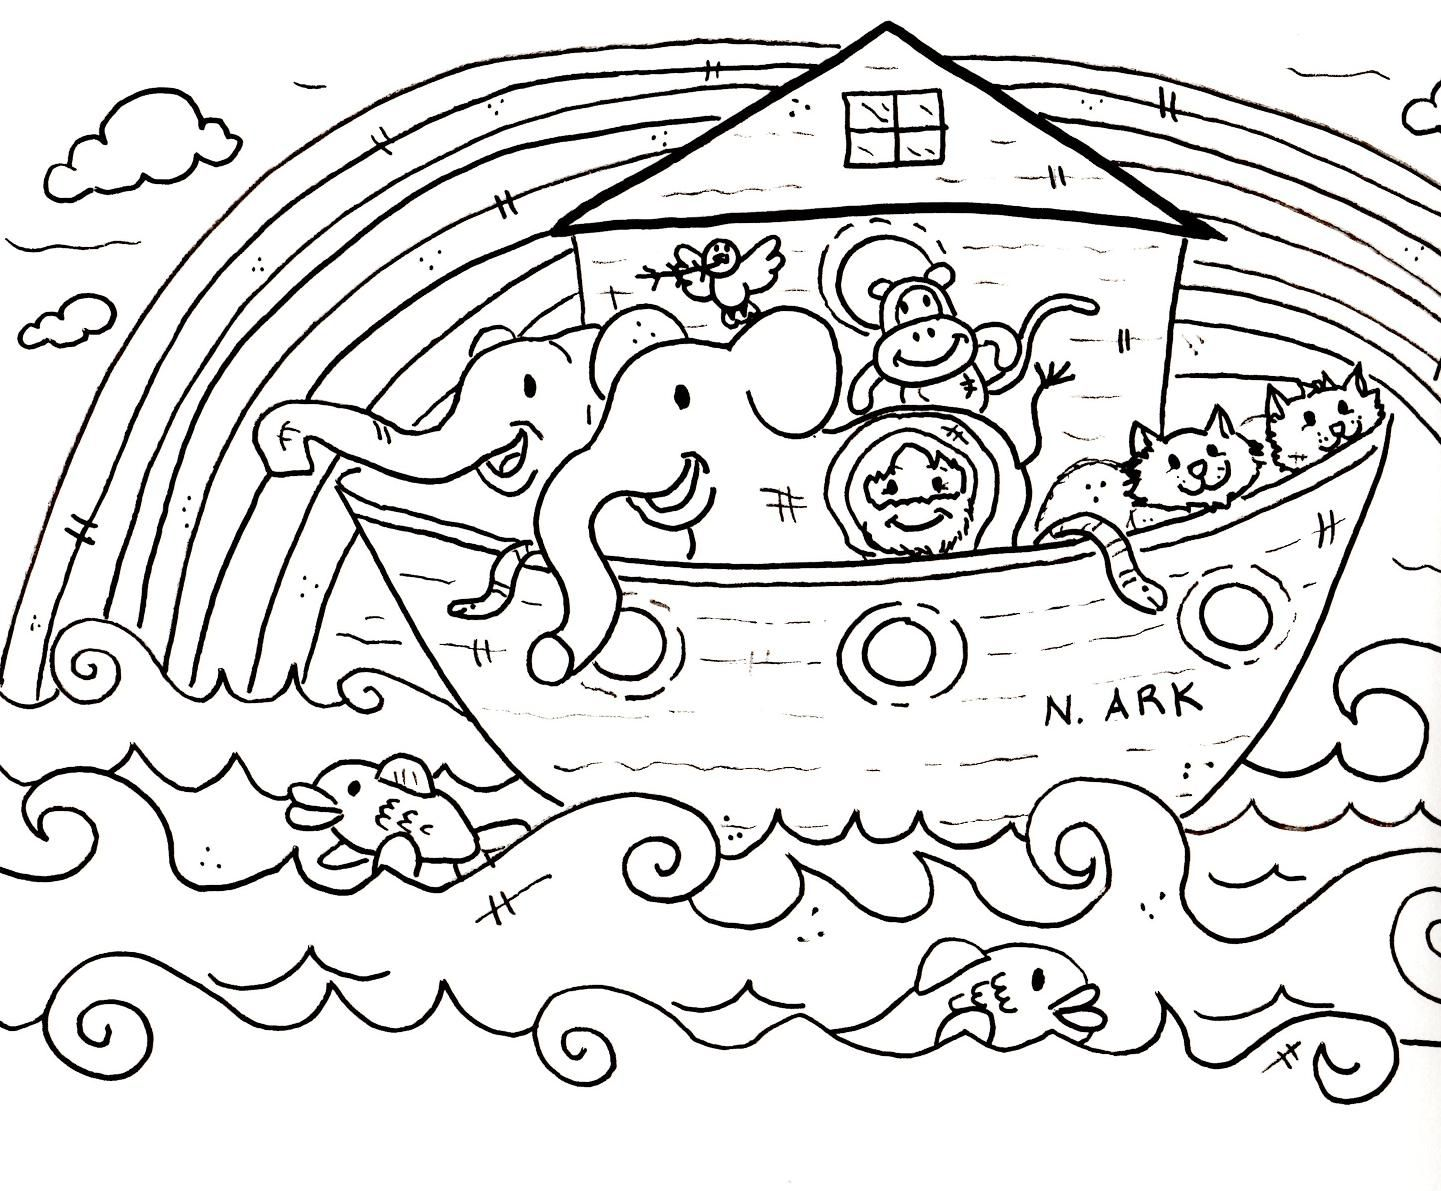 Coloring Sheet For Noahs Ark Sunday School Coloring Pages Bible Coloring Pages Free Bible Coloring Pages